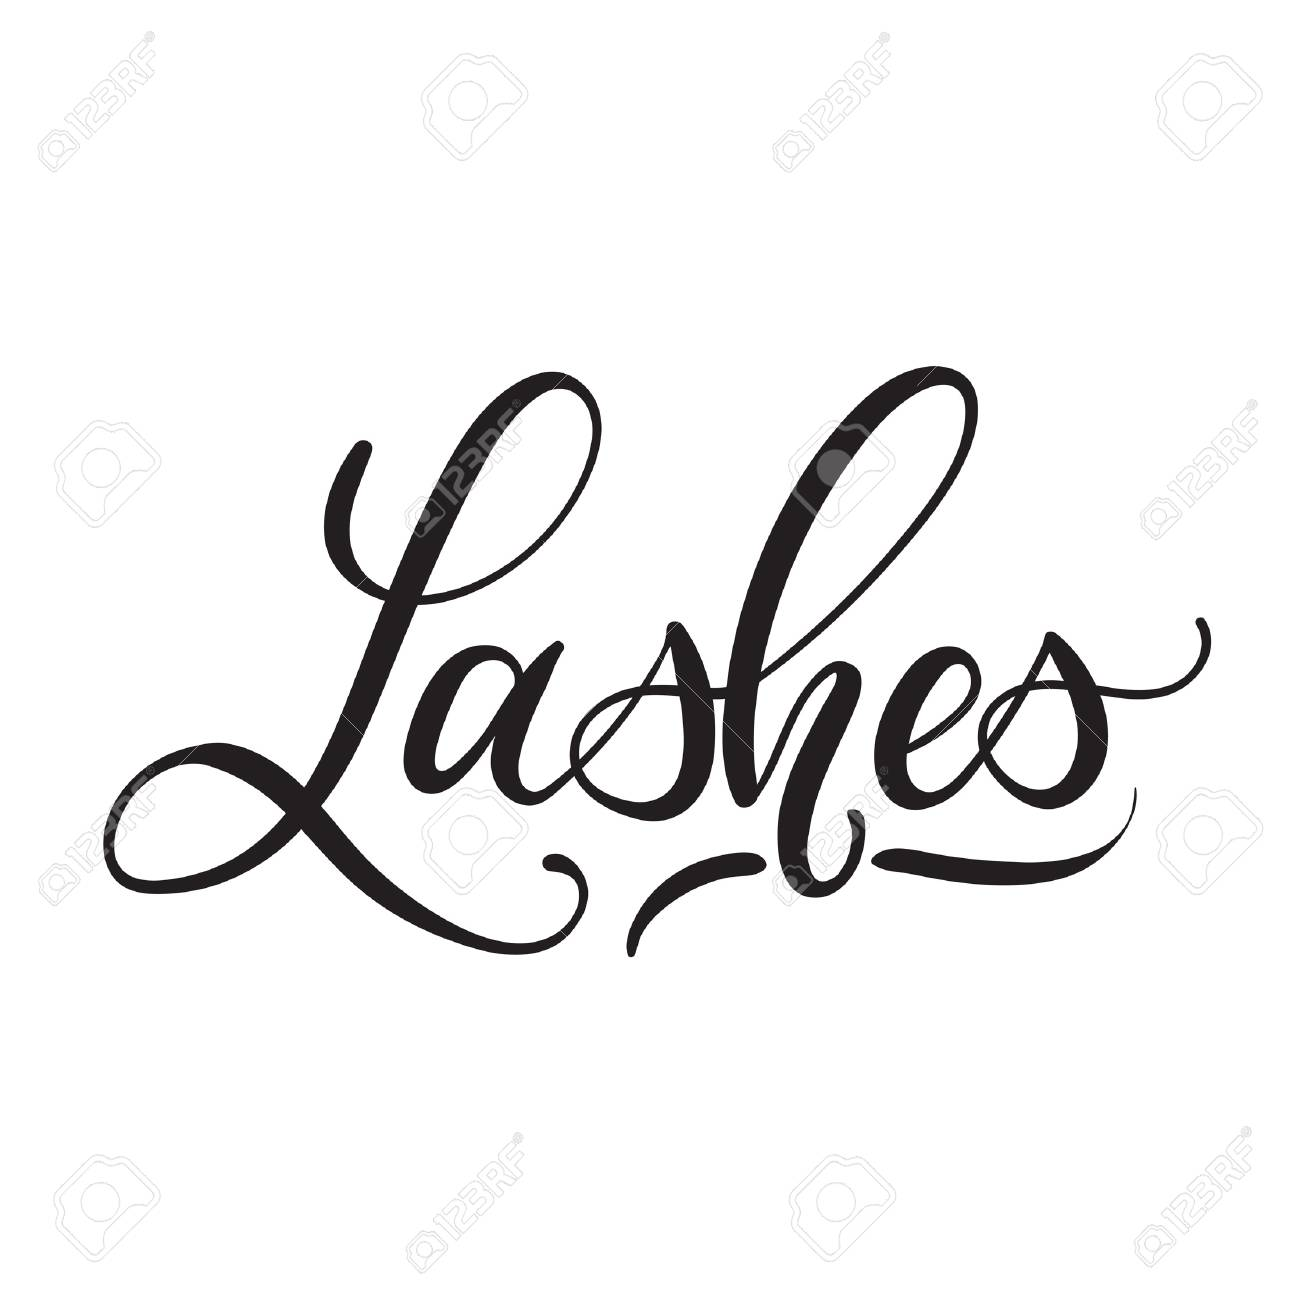 Lashes lettering logo design  Vector hand drawn lettering  Calligraphy